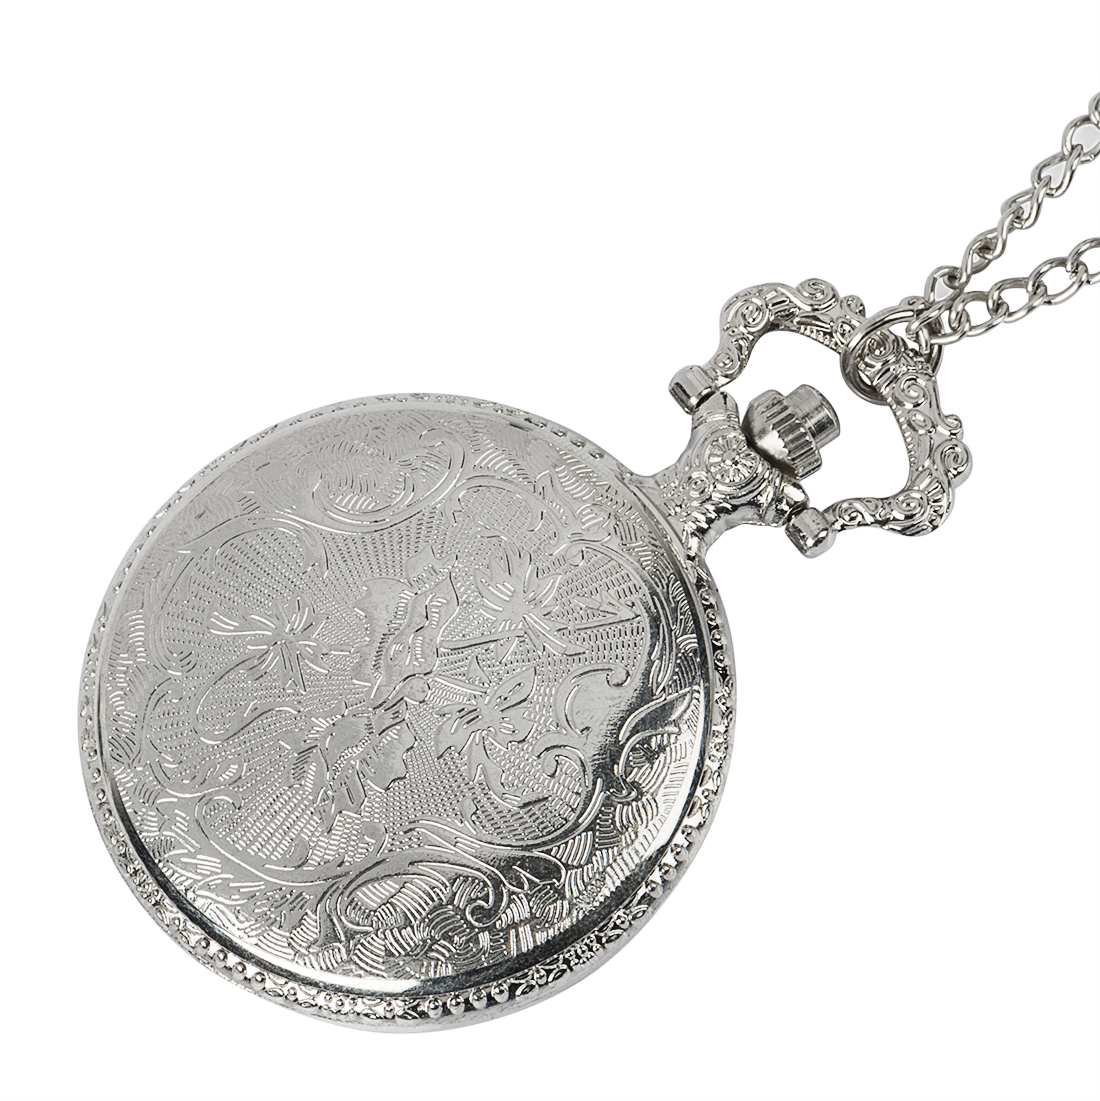 New Silver Roman Arabic Number Quartz Antique Pendant Chain Pocket Watch for Men and Women Gift in Pocket Fob Watches from Watches